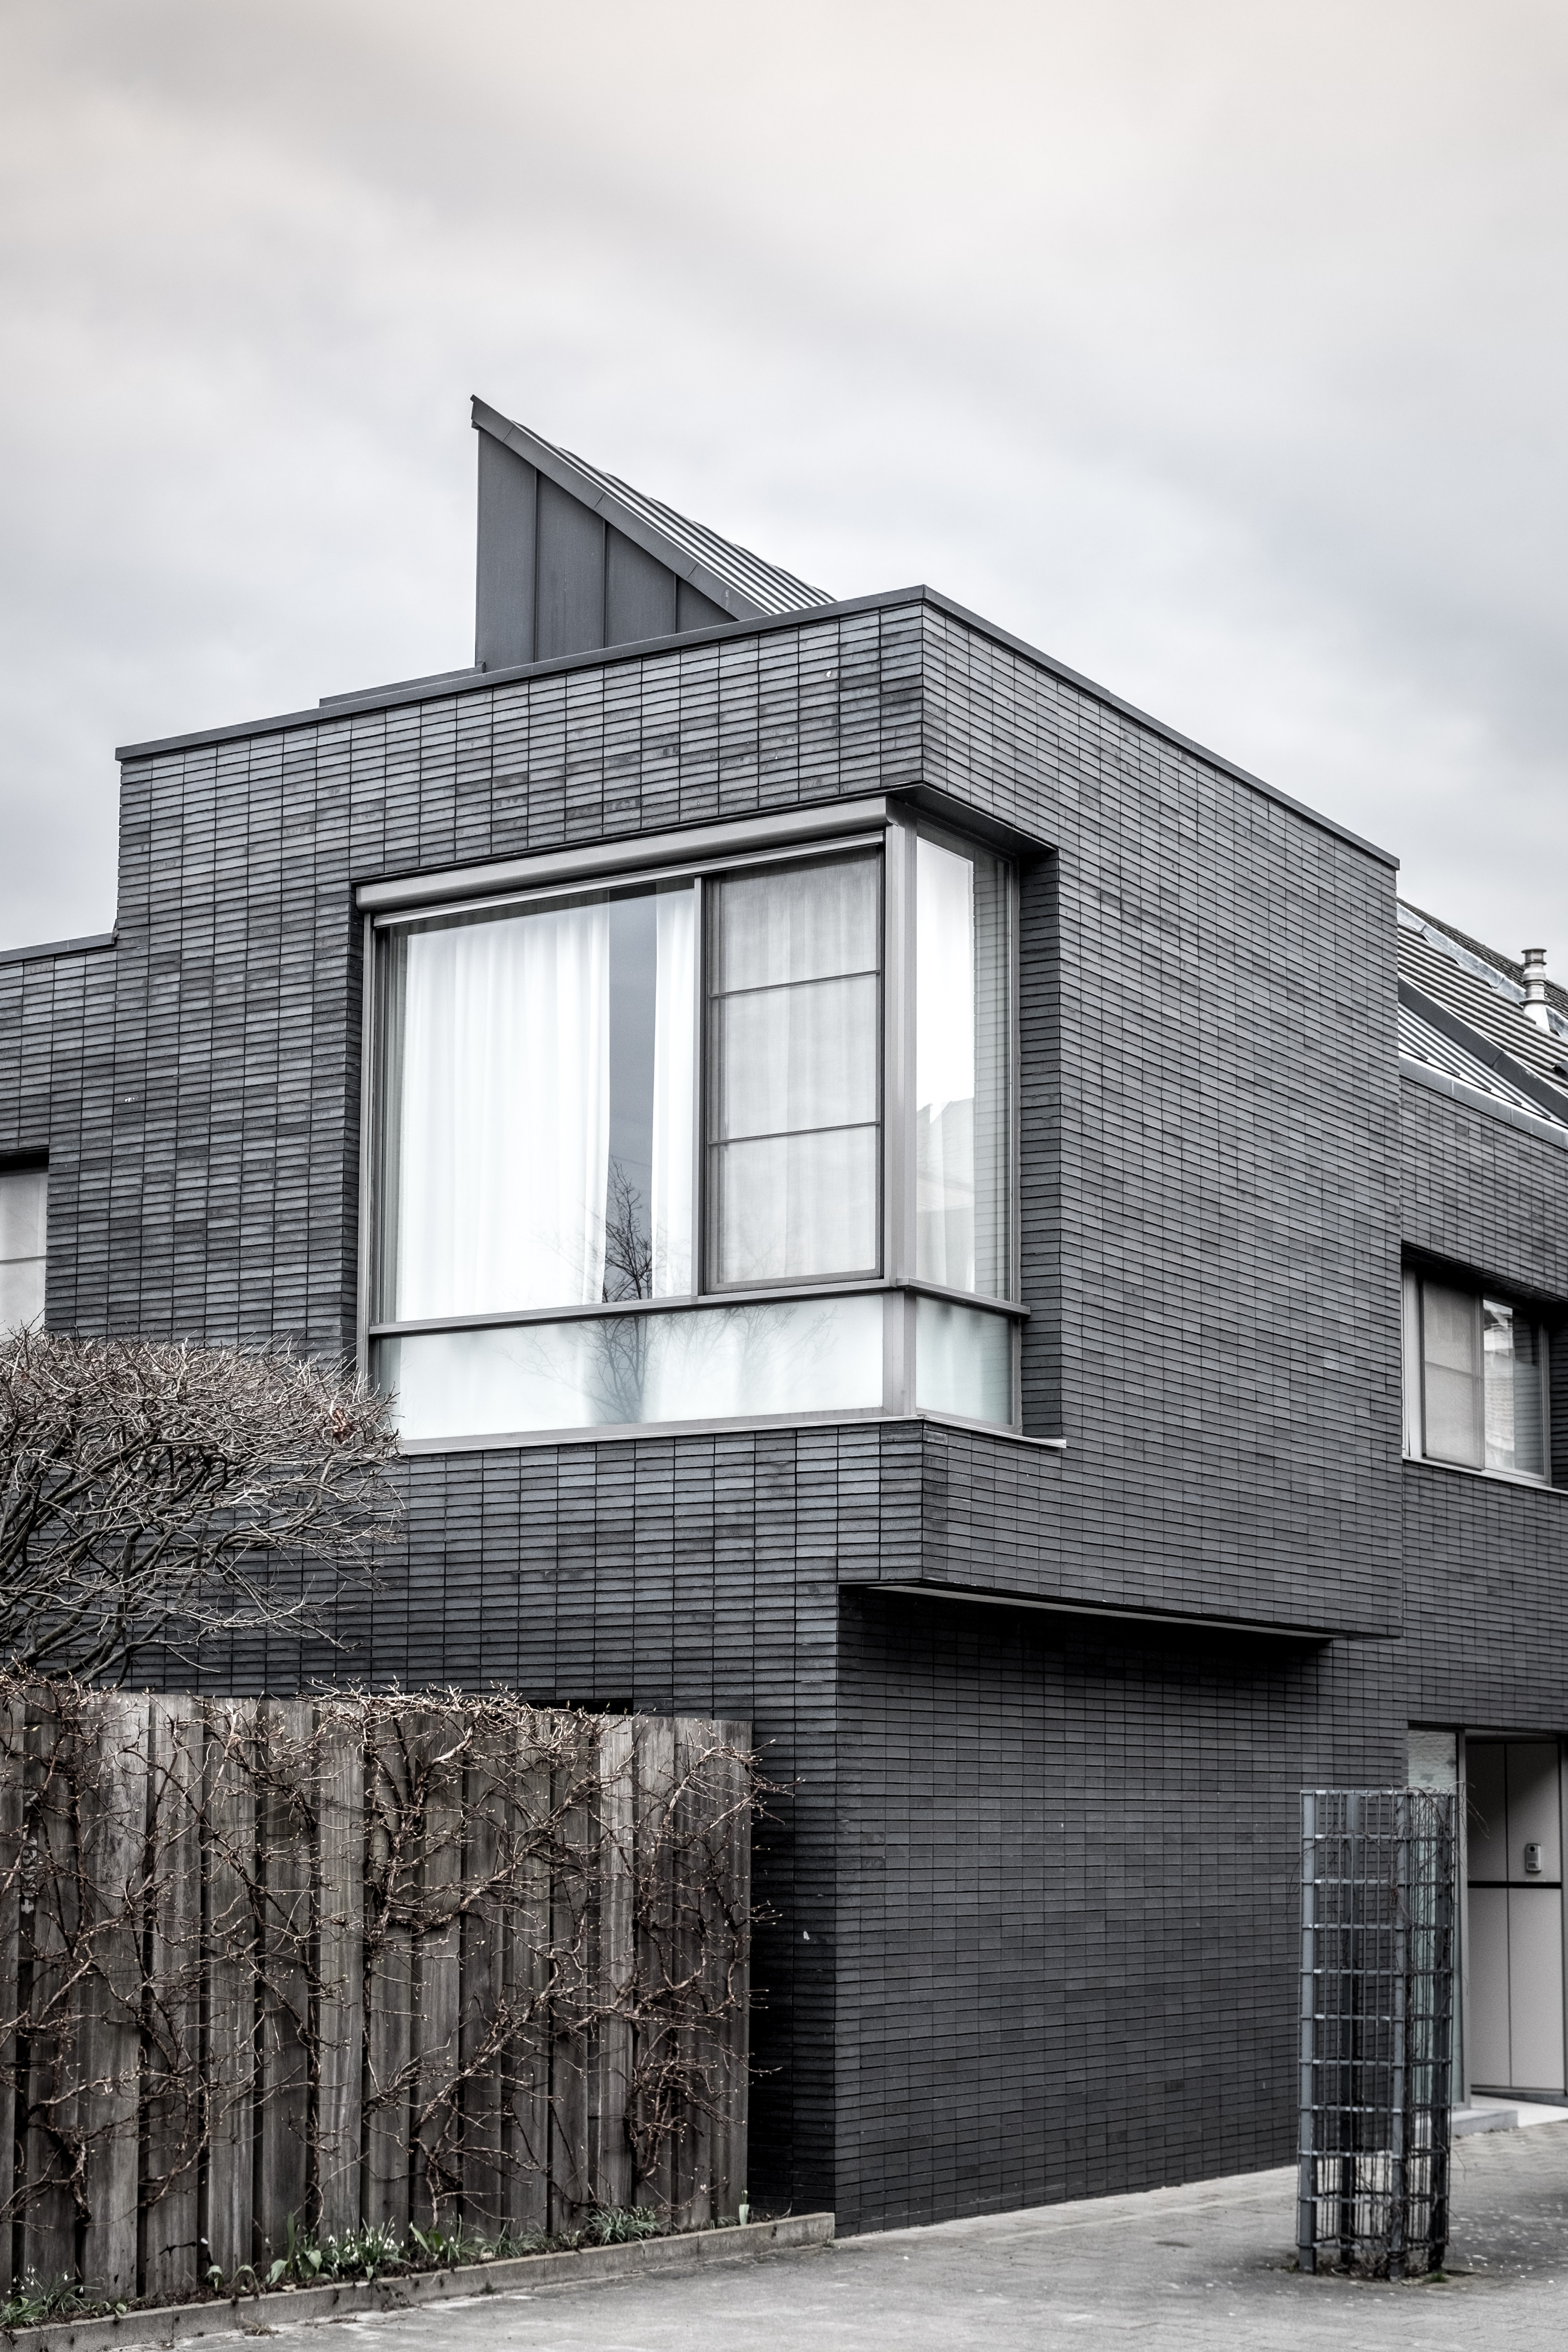 grayscale photography of 2-storey house